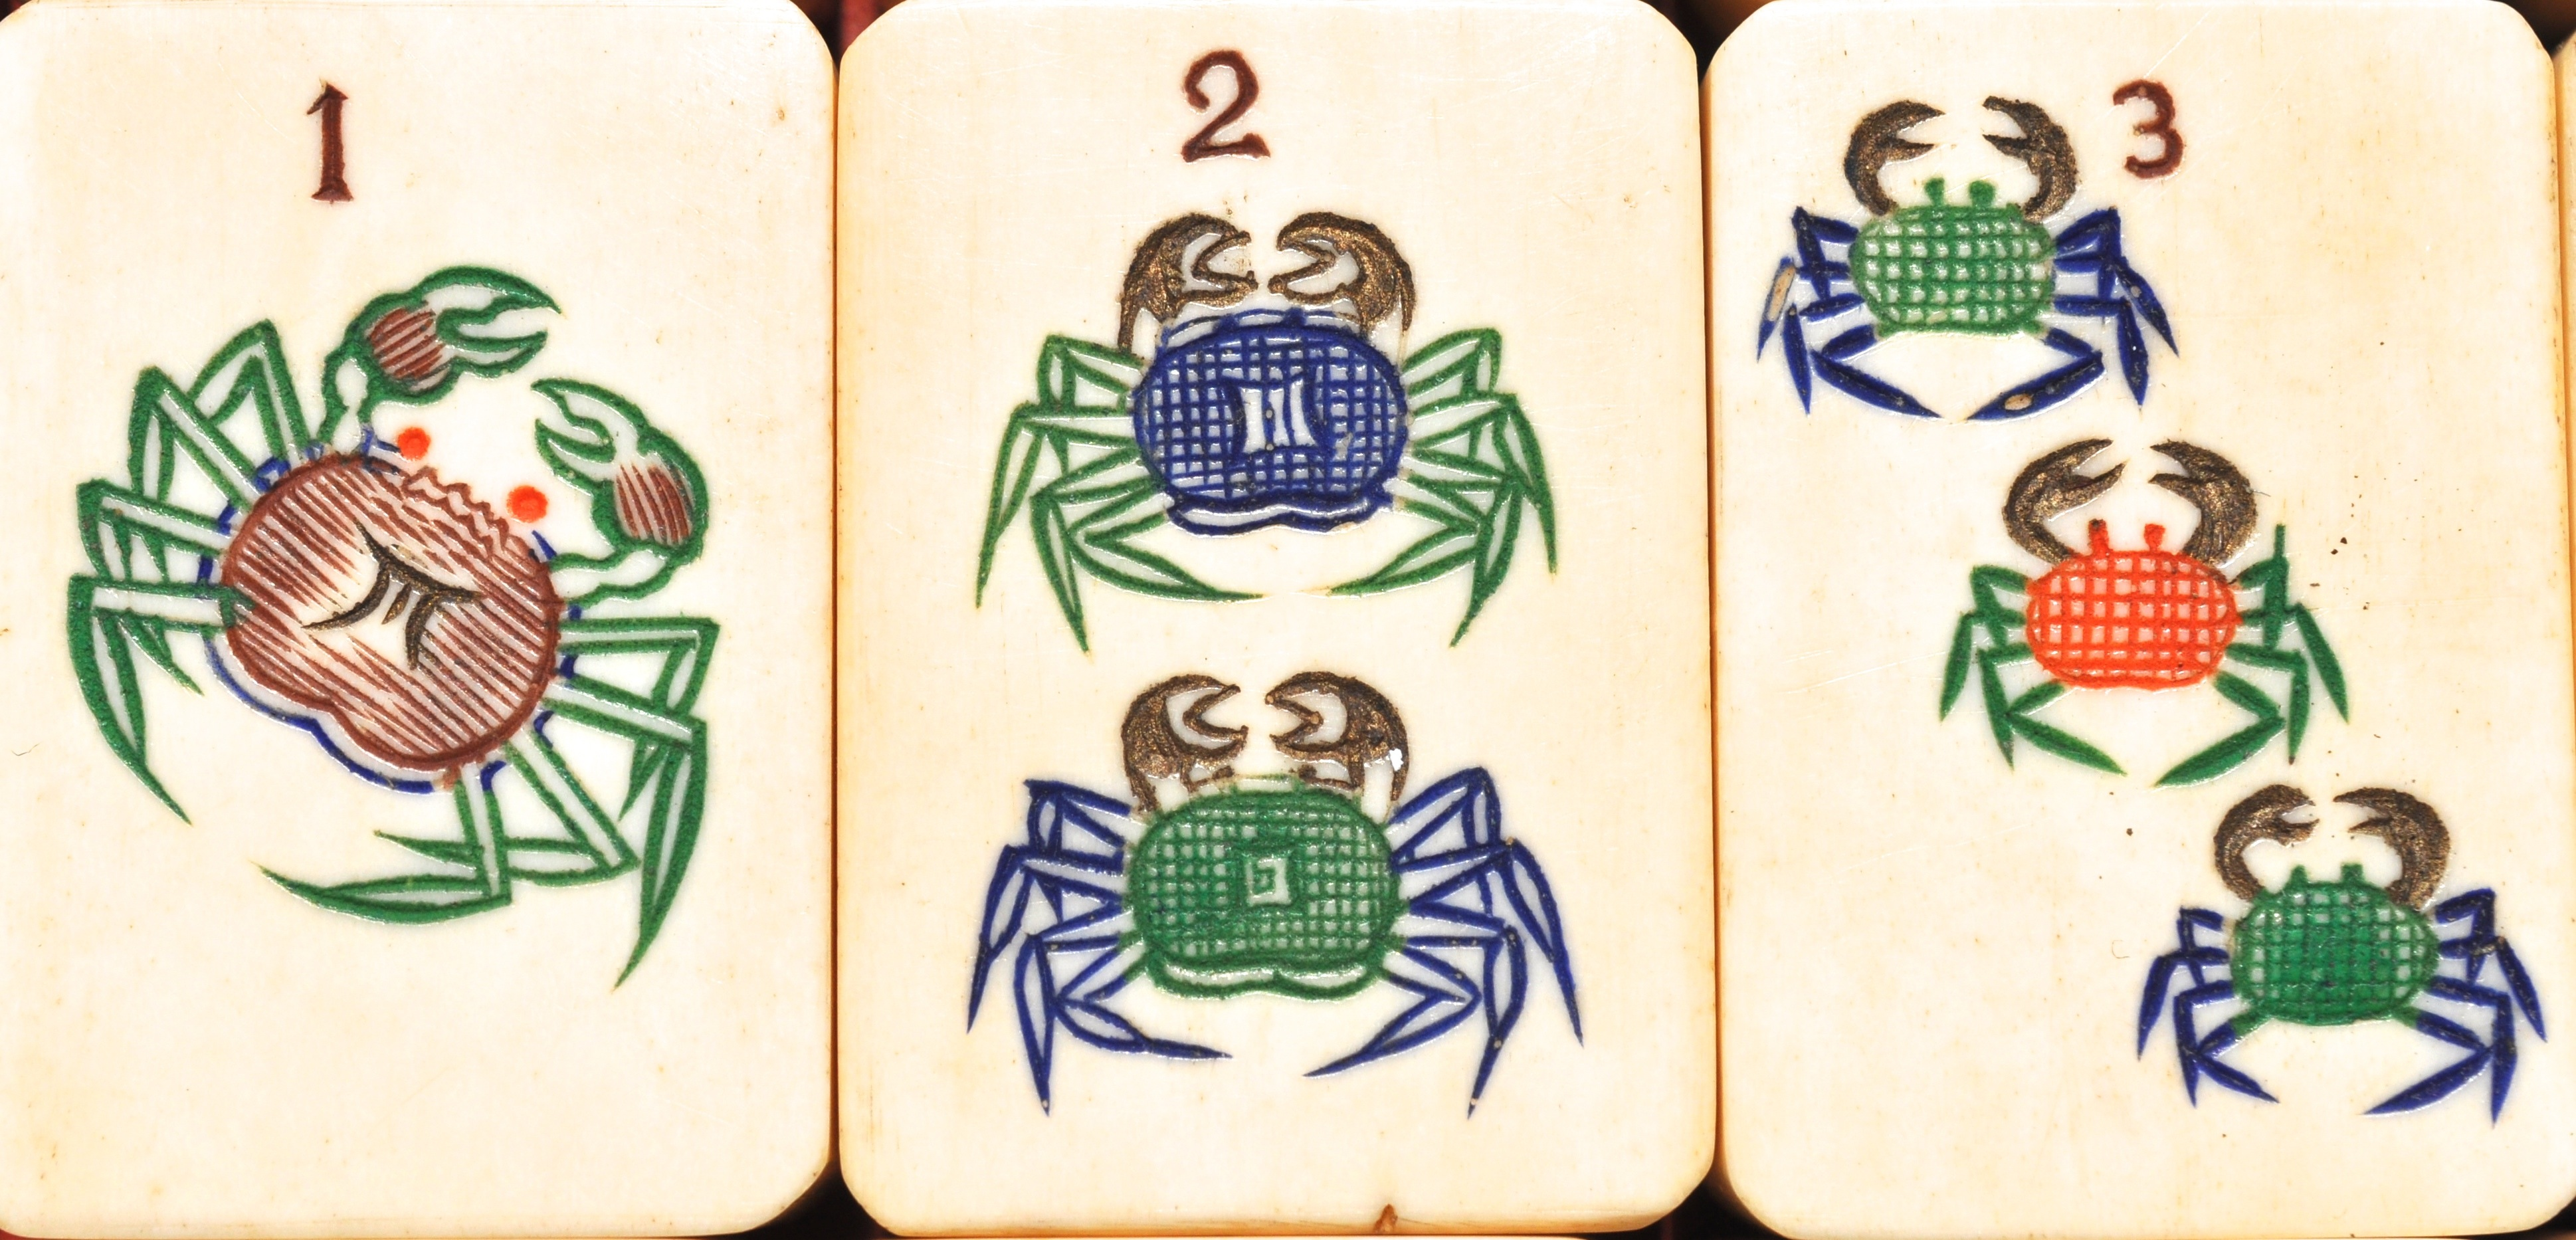 these crabs are dots in a shanghai luck mahjong set